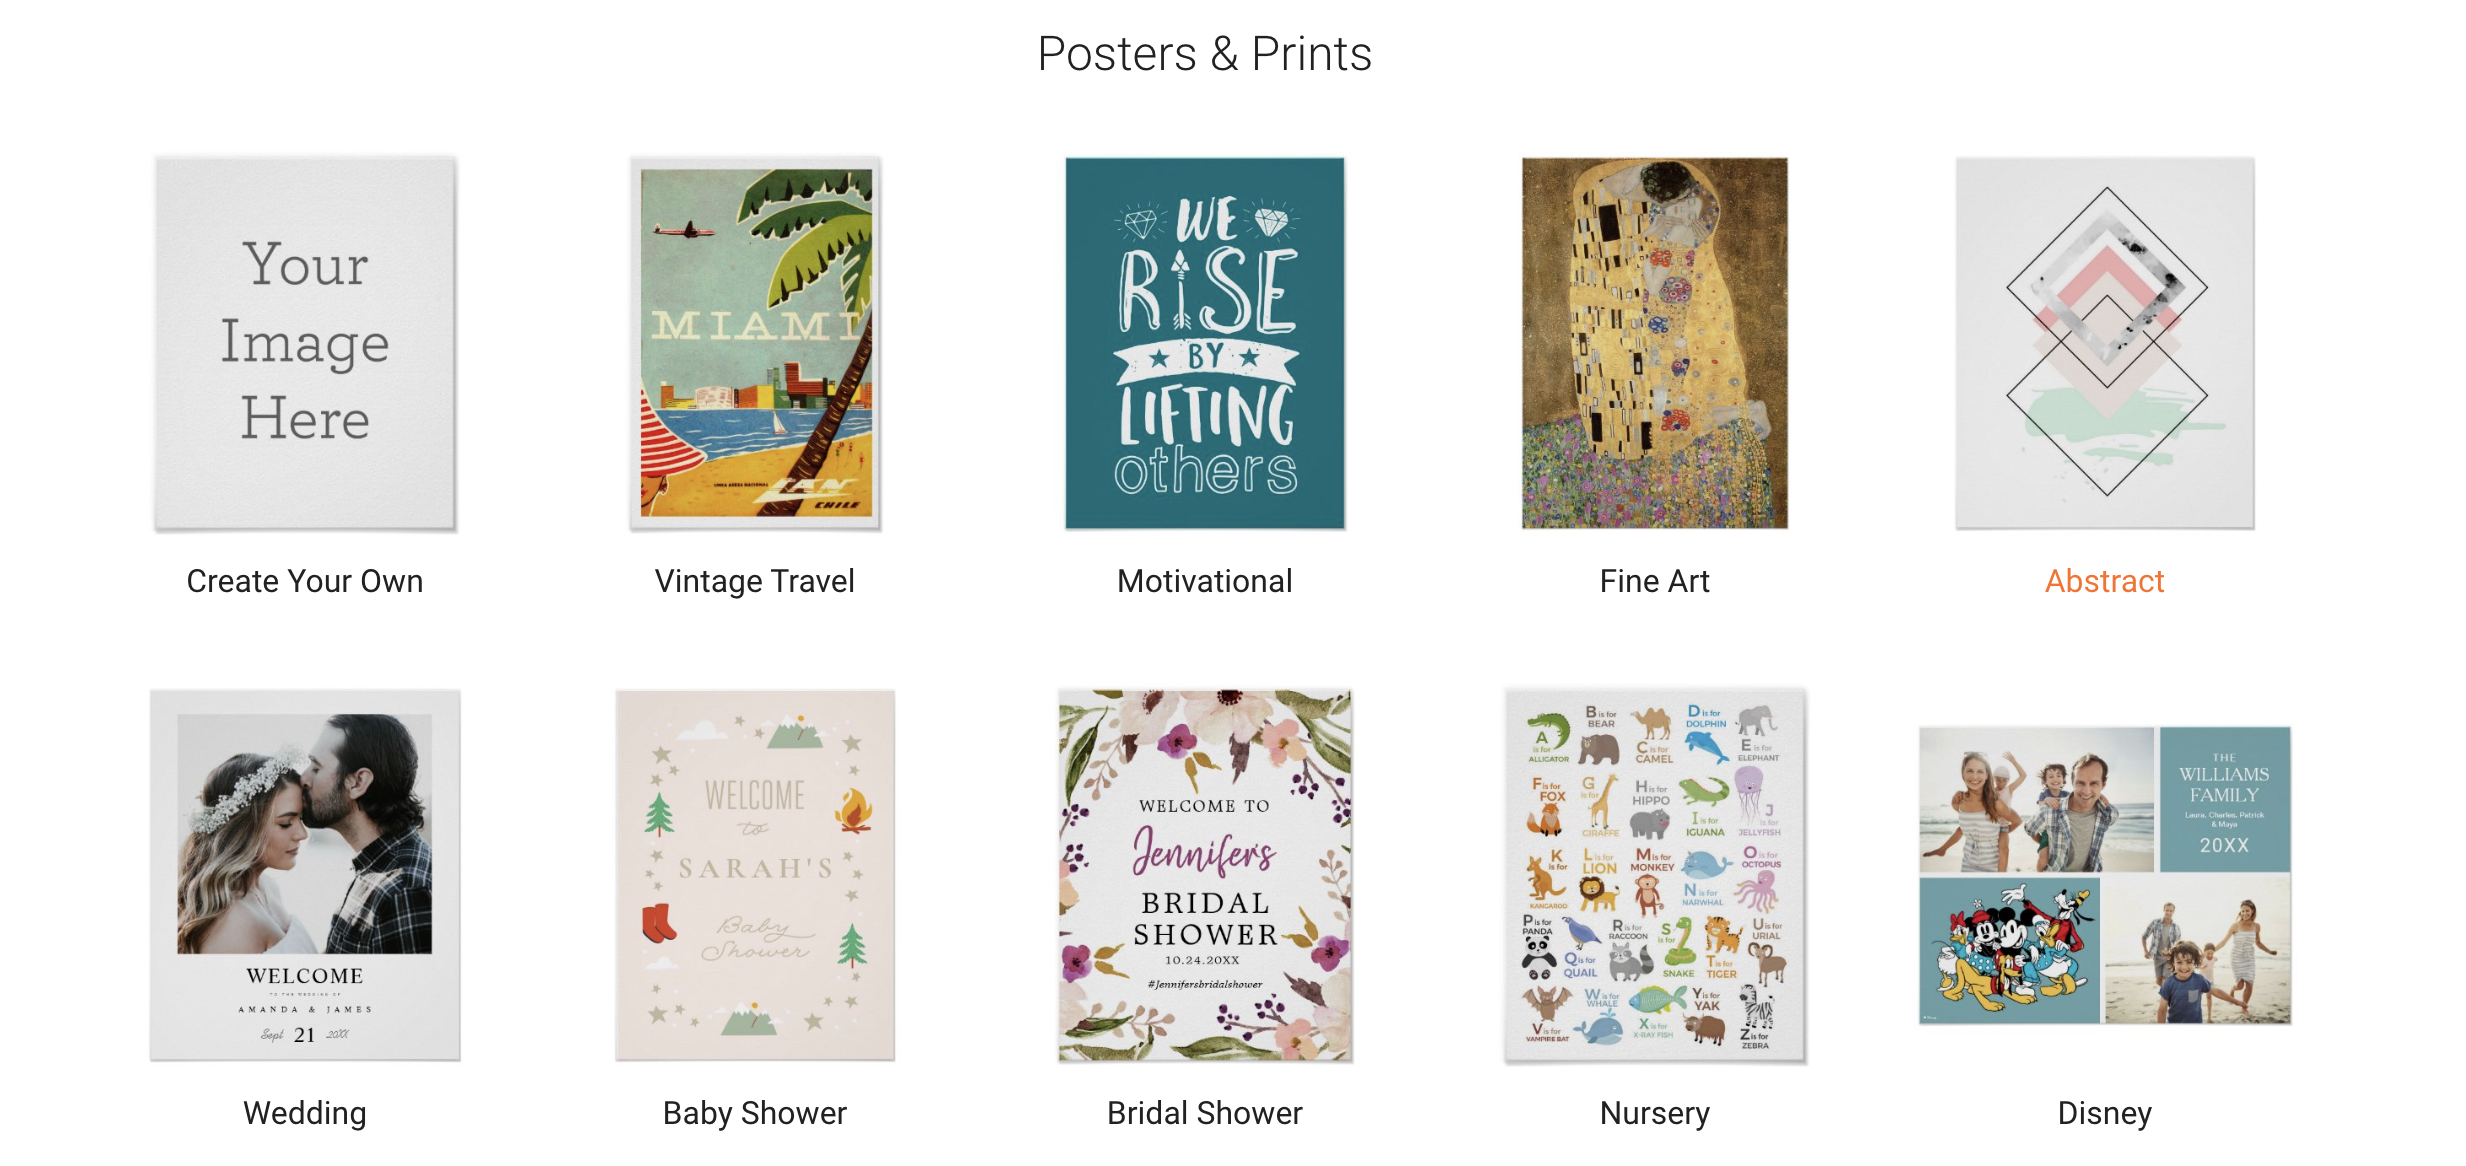 10 different poster sections Zazzle offers on the main page